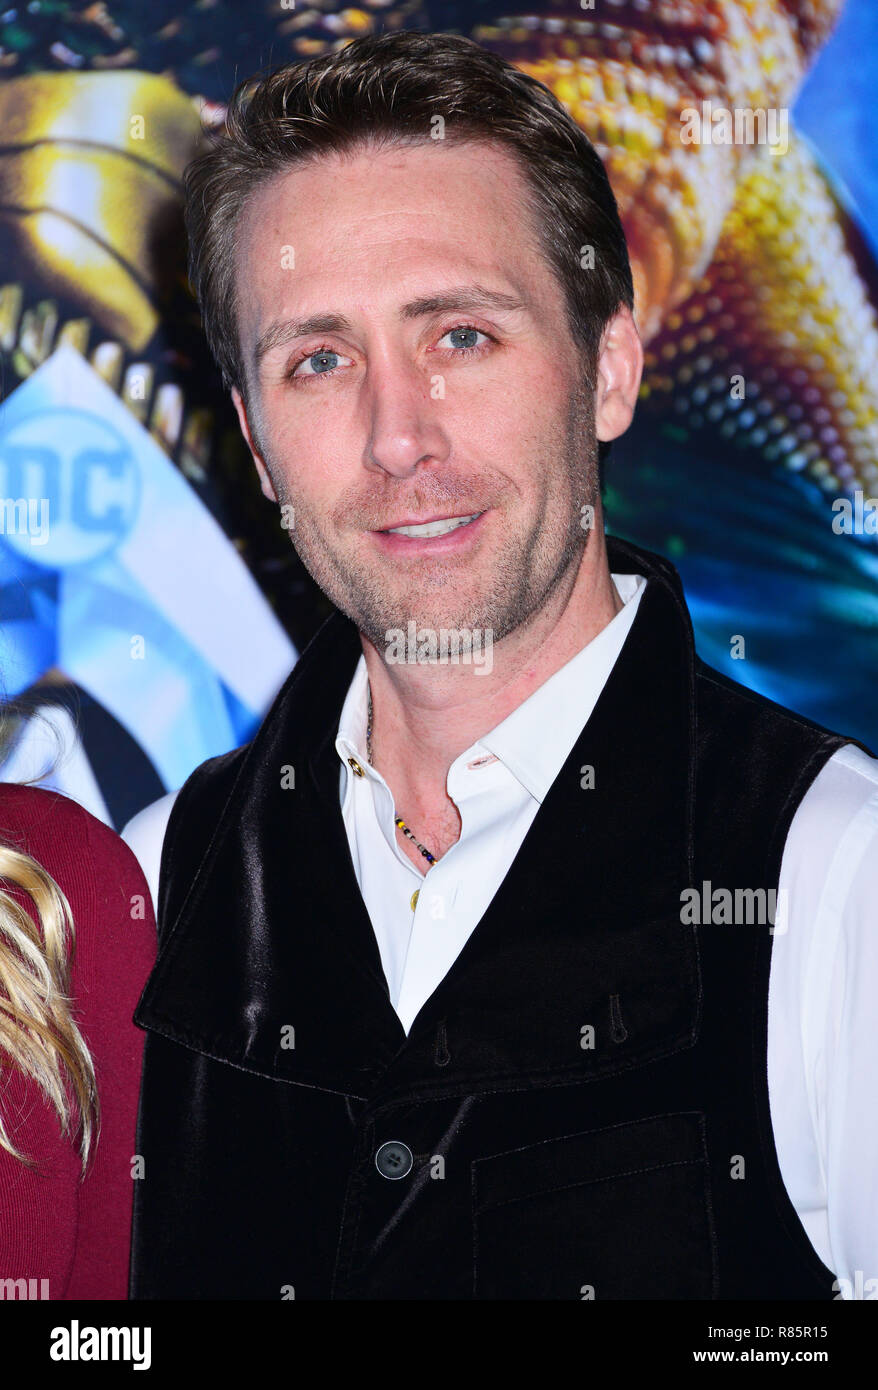 Los Angeles, USA. 12th Dec 2018. Philippe Cousteau  arrives at the Premiere Of Warner Bros. Pictures' Aquaman at TCL Chinese Theatre on December 12, 2018 in Hollywood, California Credit: Tsuni / USA/Alamy Live News Stock Photo